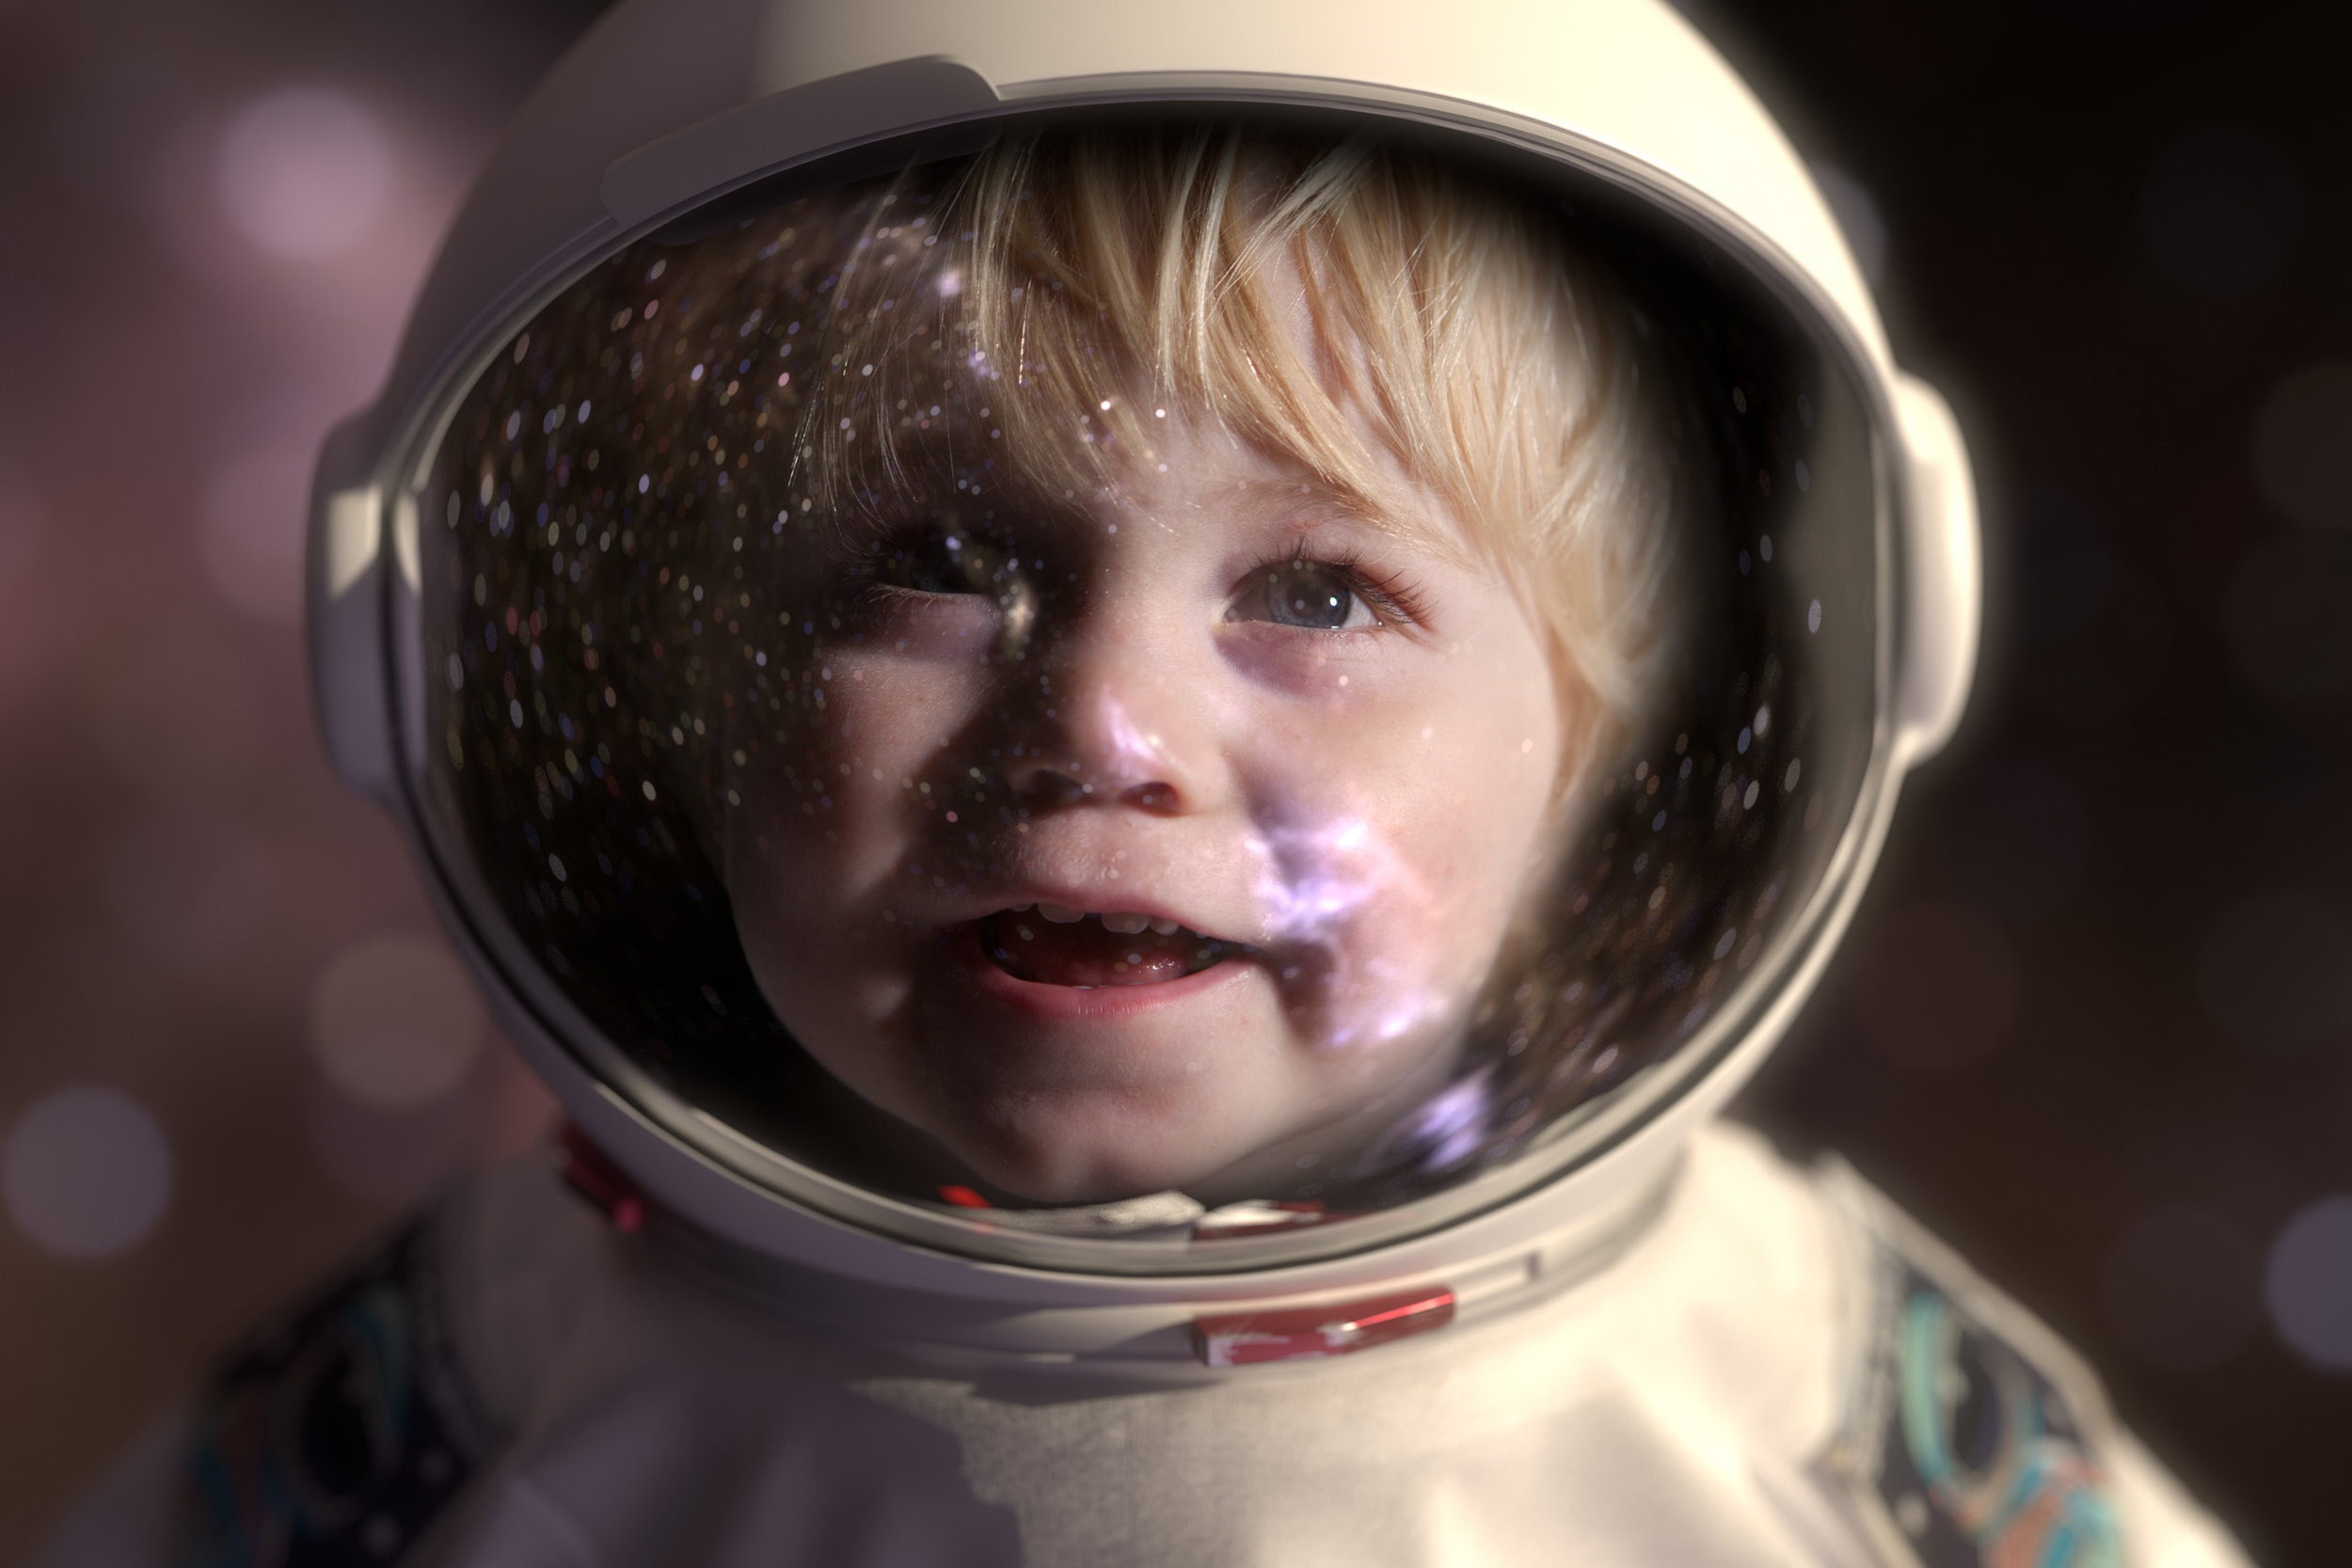 Space Explorer Jack by Whitaker Studio